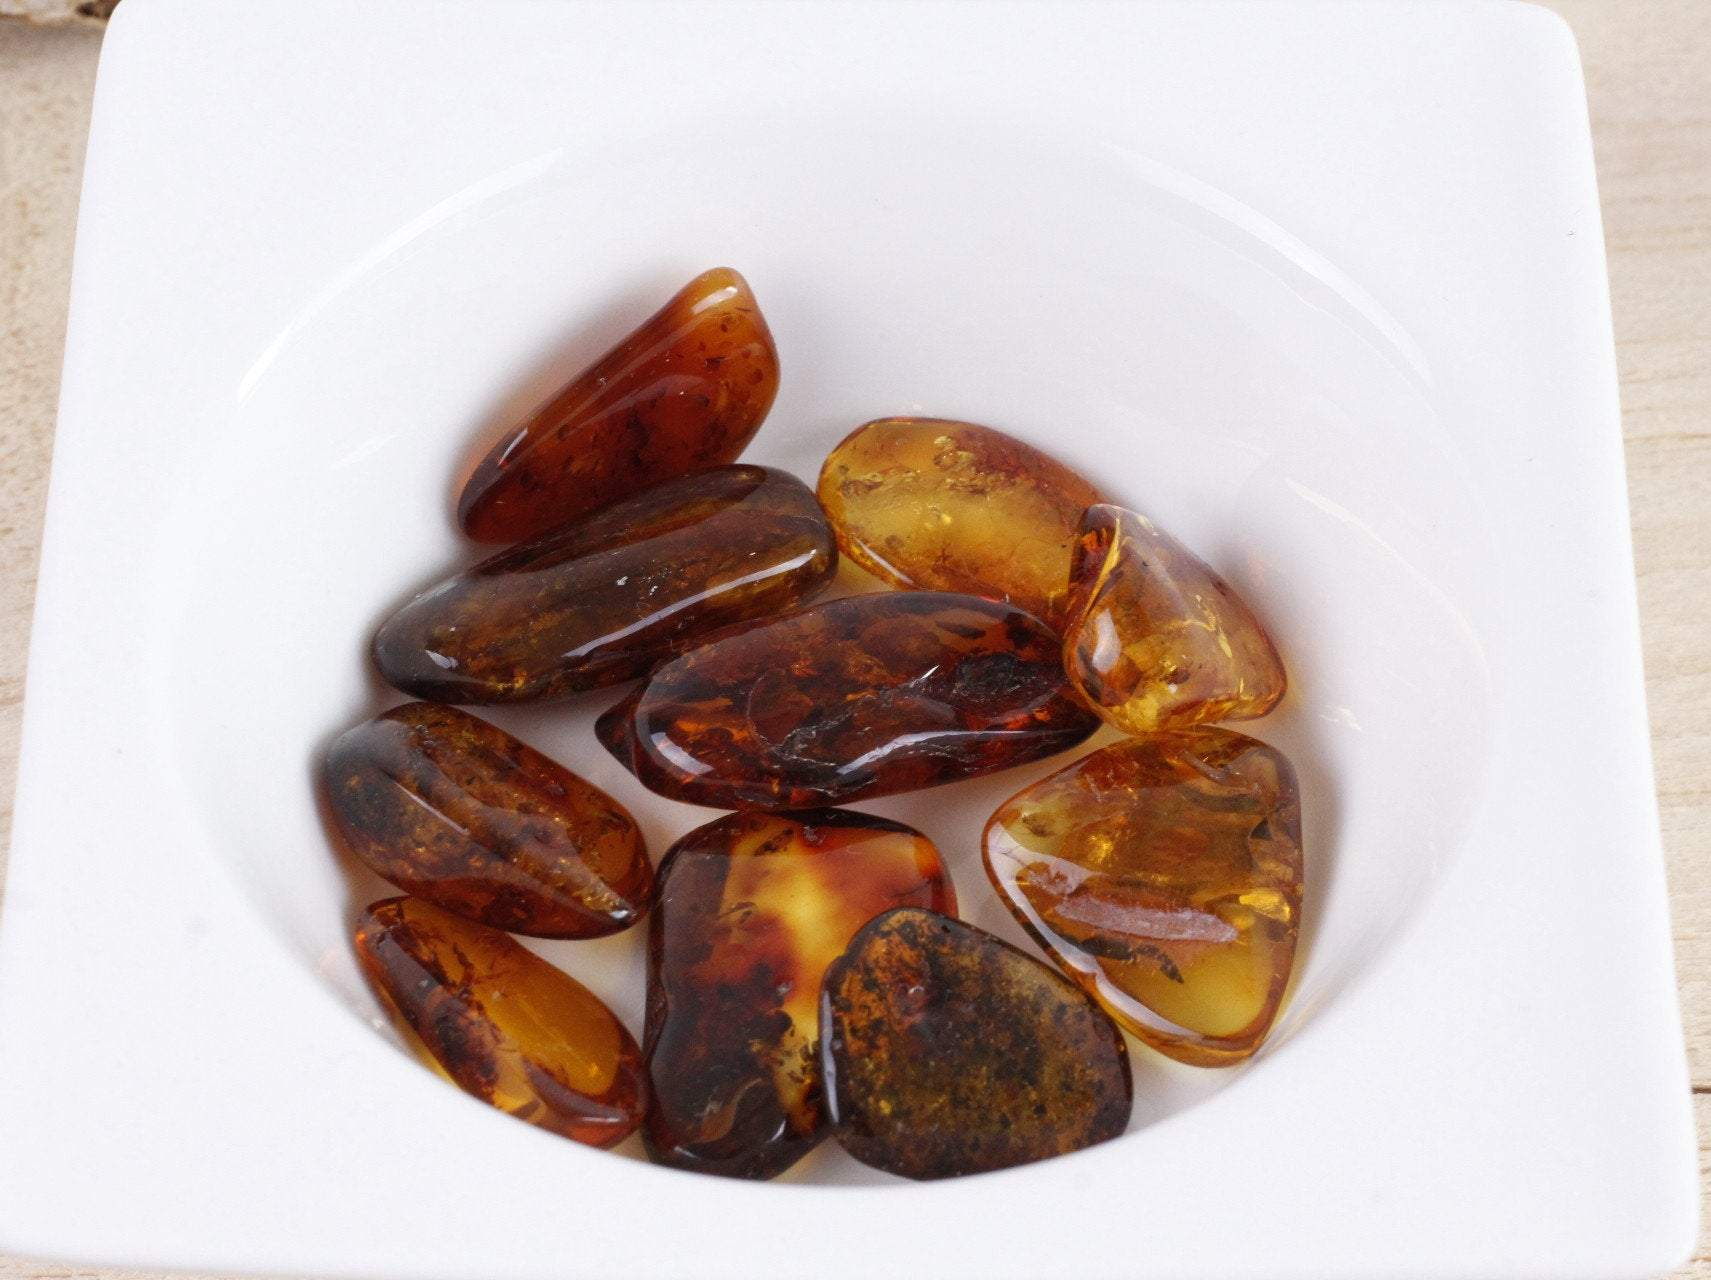 Amber Tumbled Stone - Weight 2g to 3g - Amber SOS